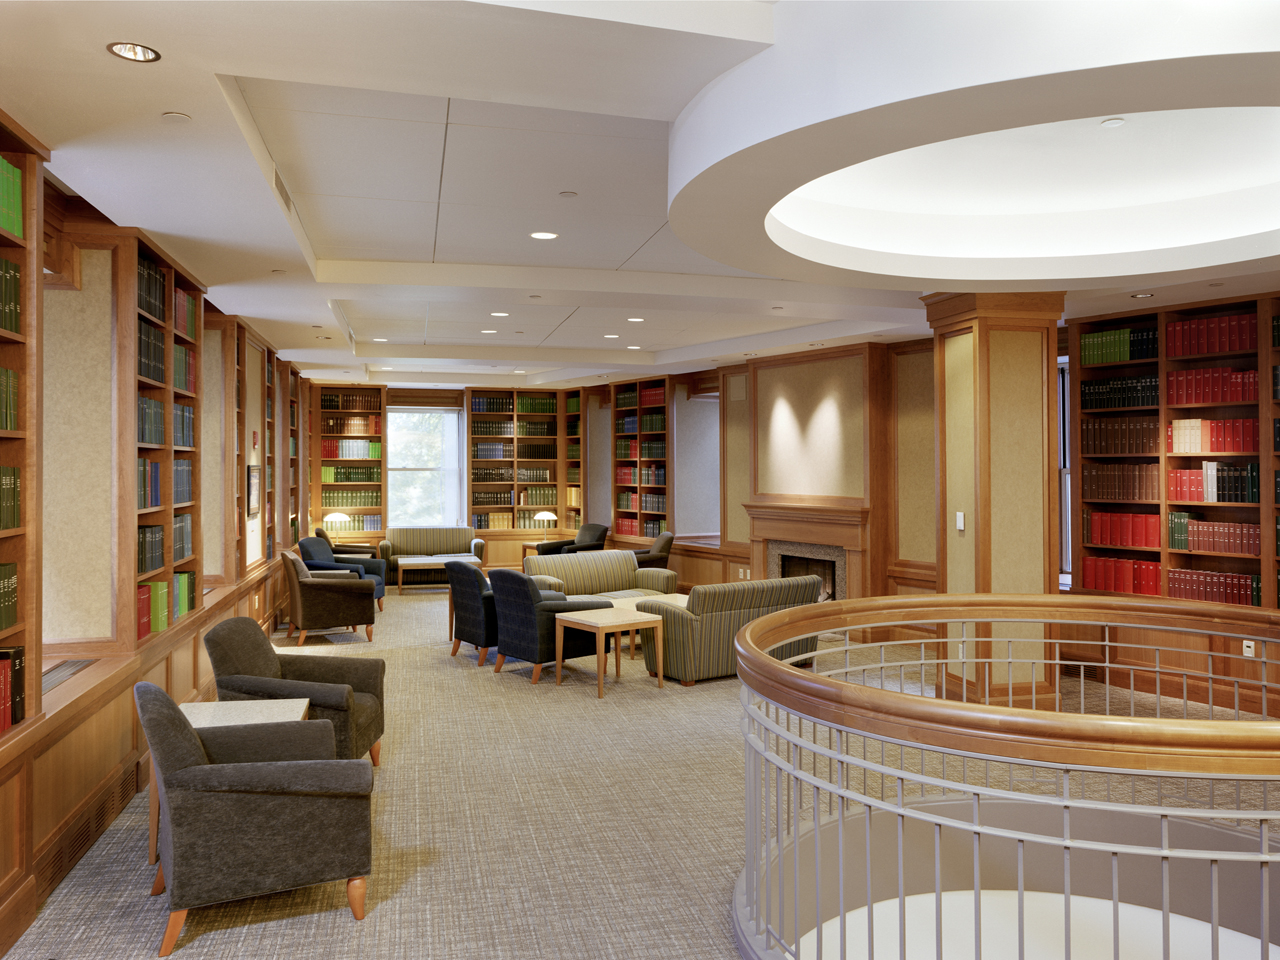 Mildred sawyer lib